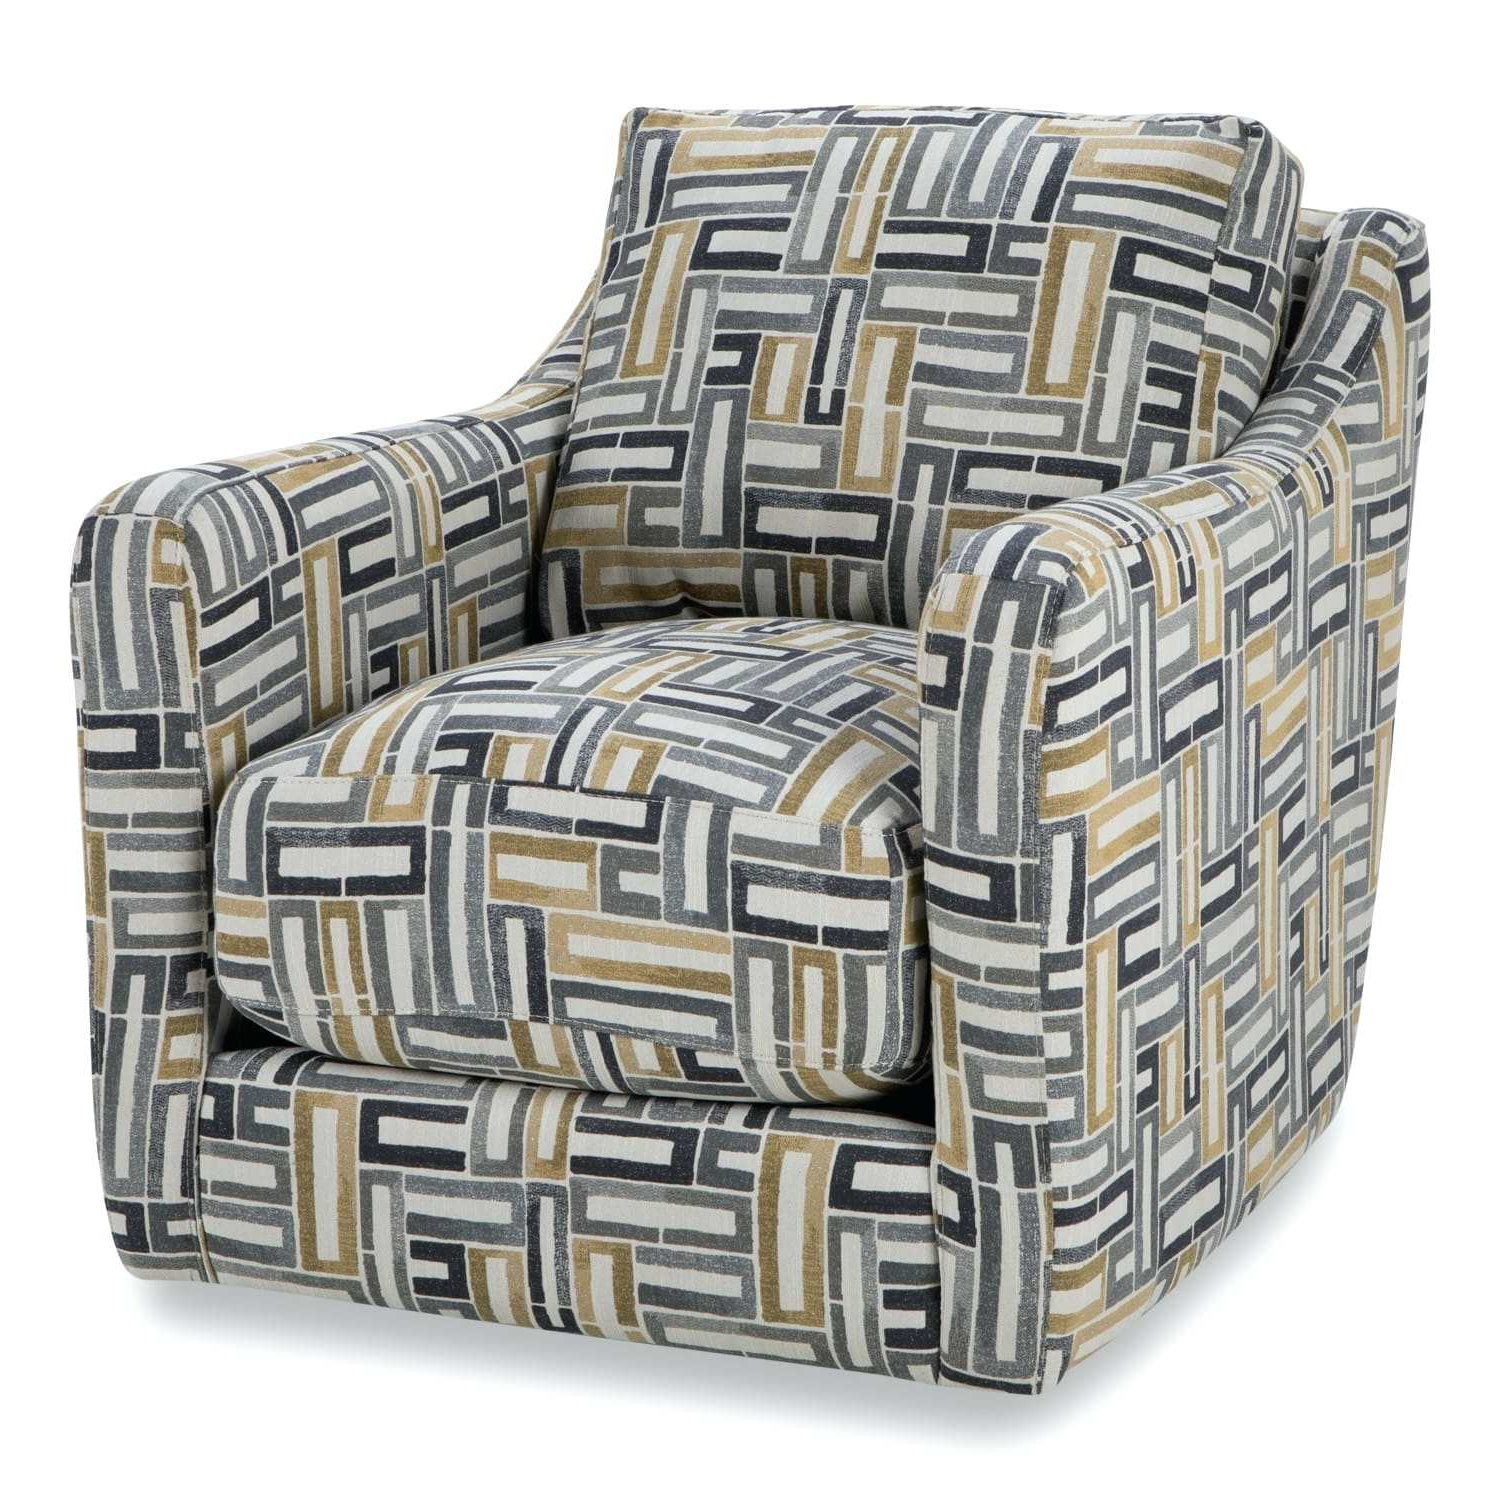 2018 Circuit Swivel Accent Chair Living Spaces Swivel Accent Chair Swivel With Regard To Circuit Swivel Accent Chairs (Gallery 3 of 20)